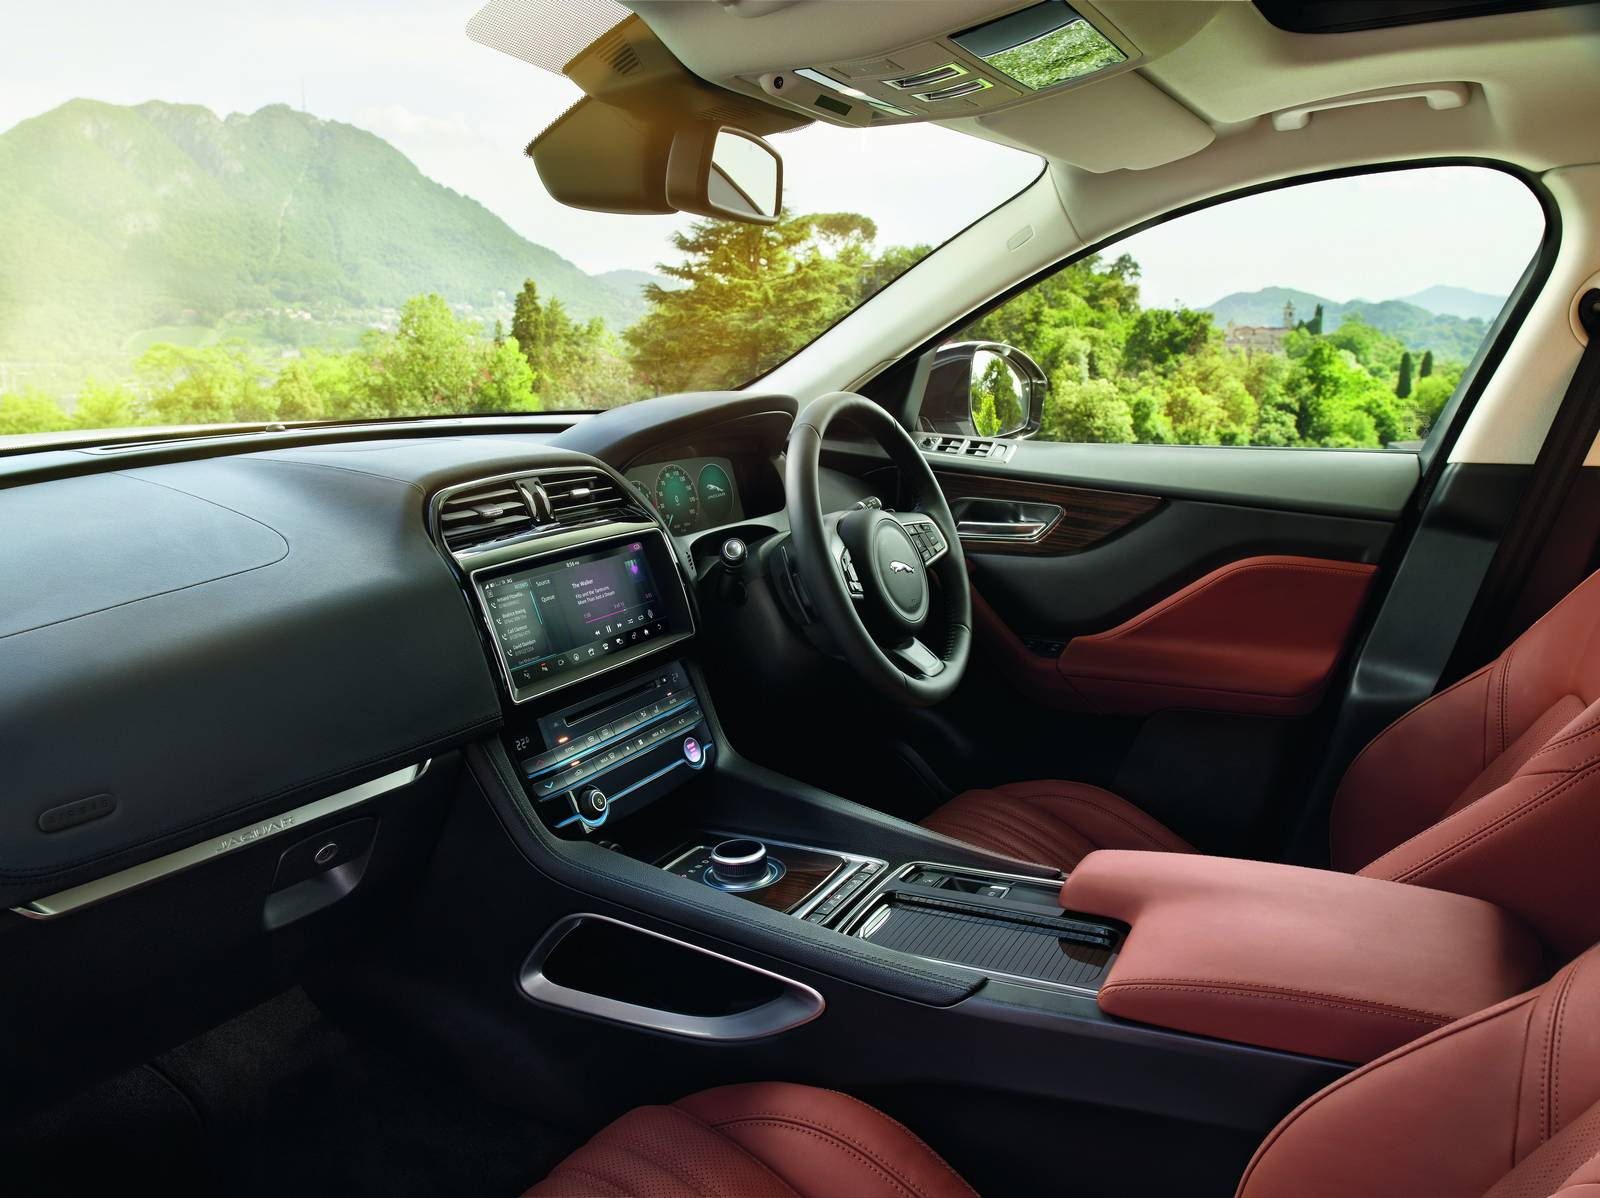 2016 Jaguar F-PACE interior